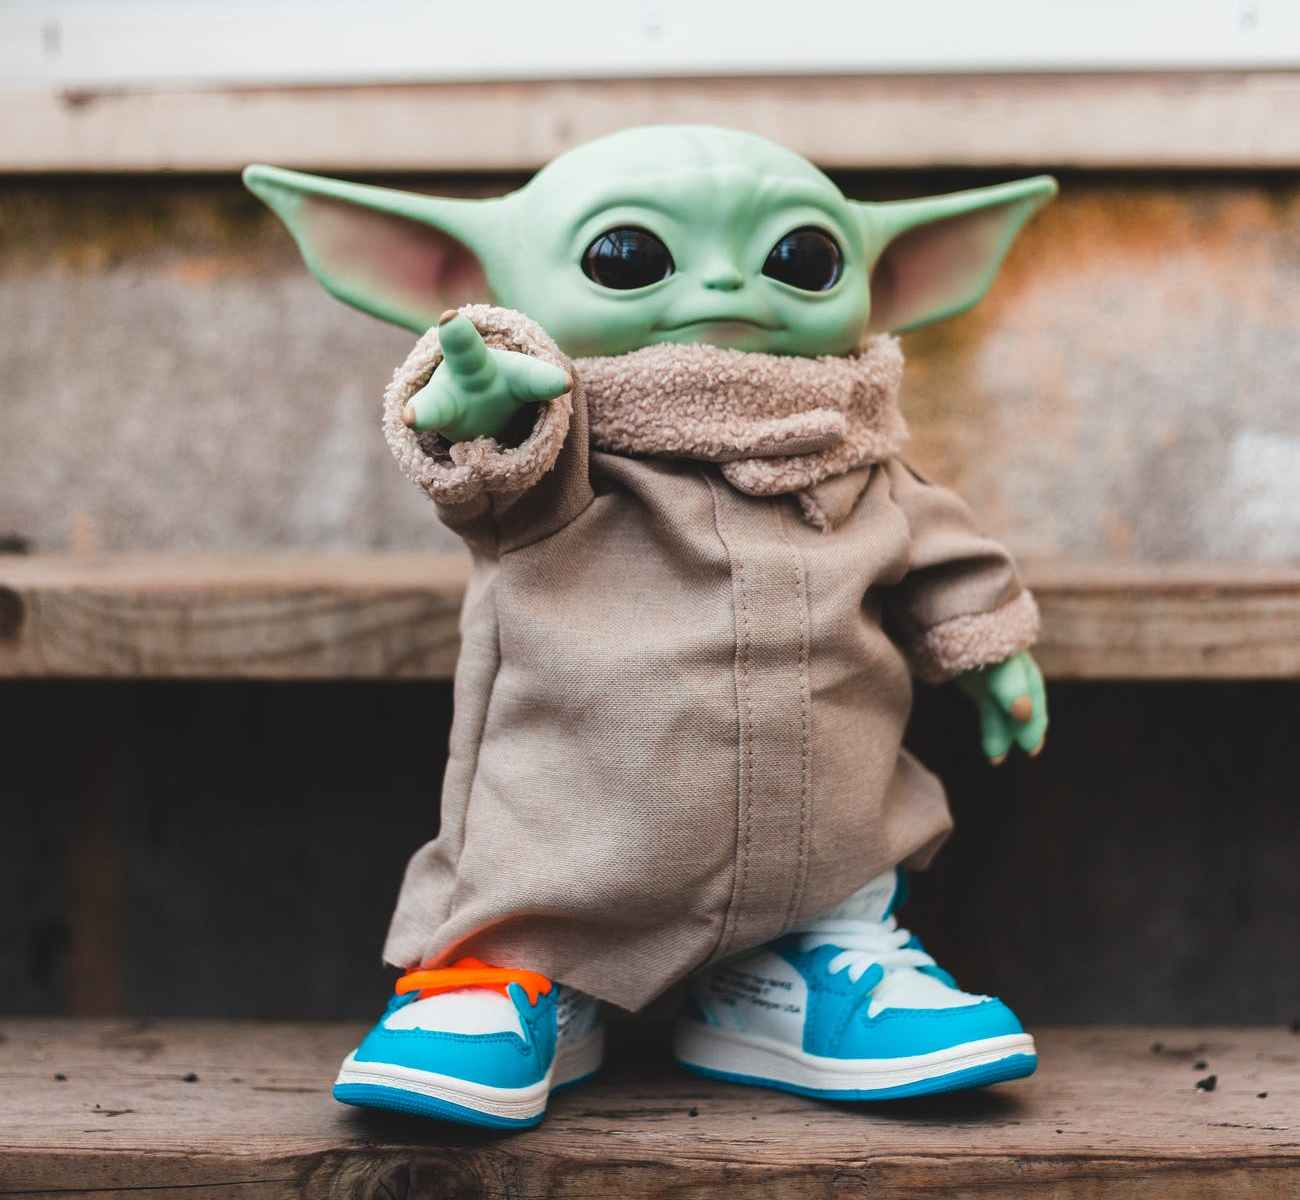 toy figure in modern sneakers on stairs